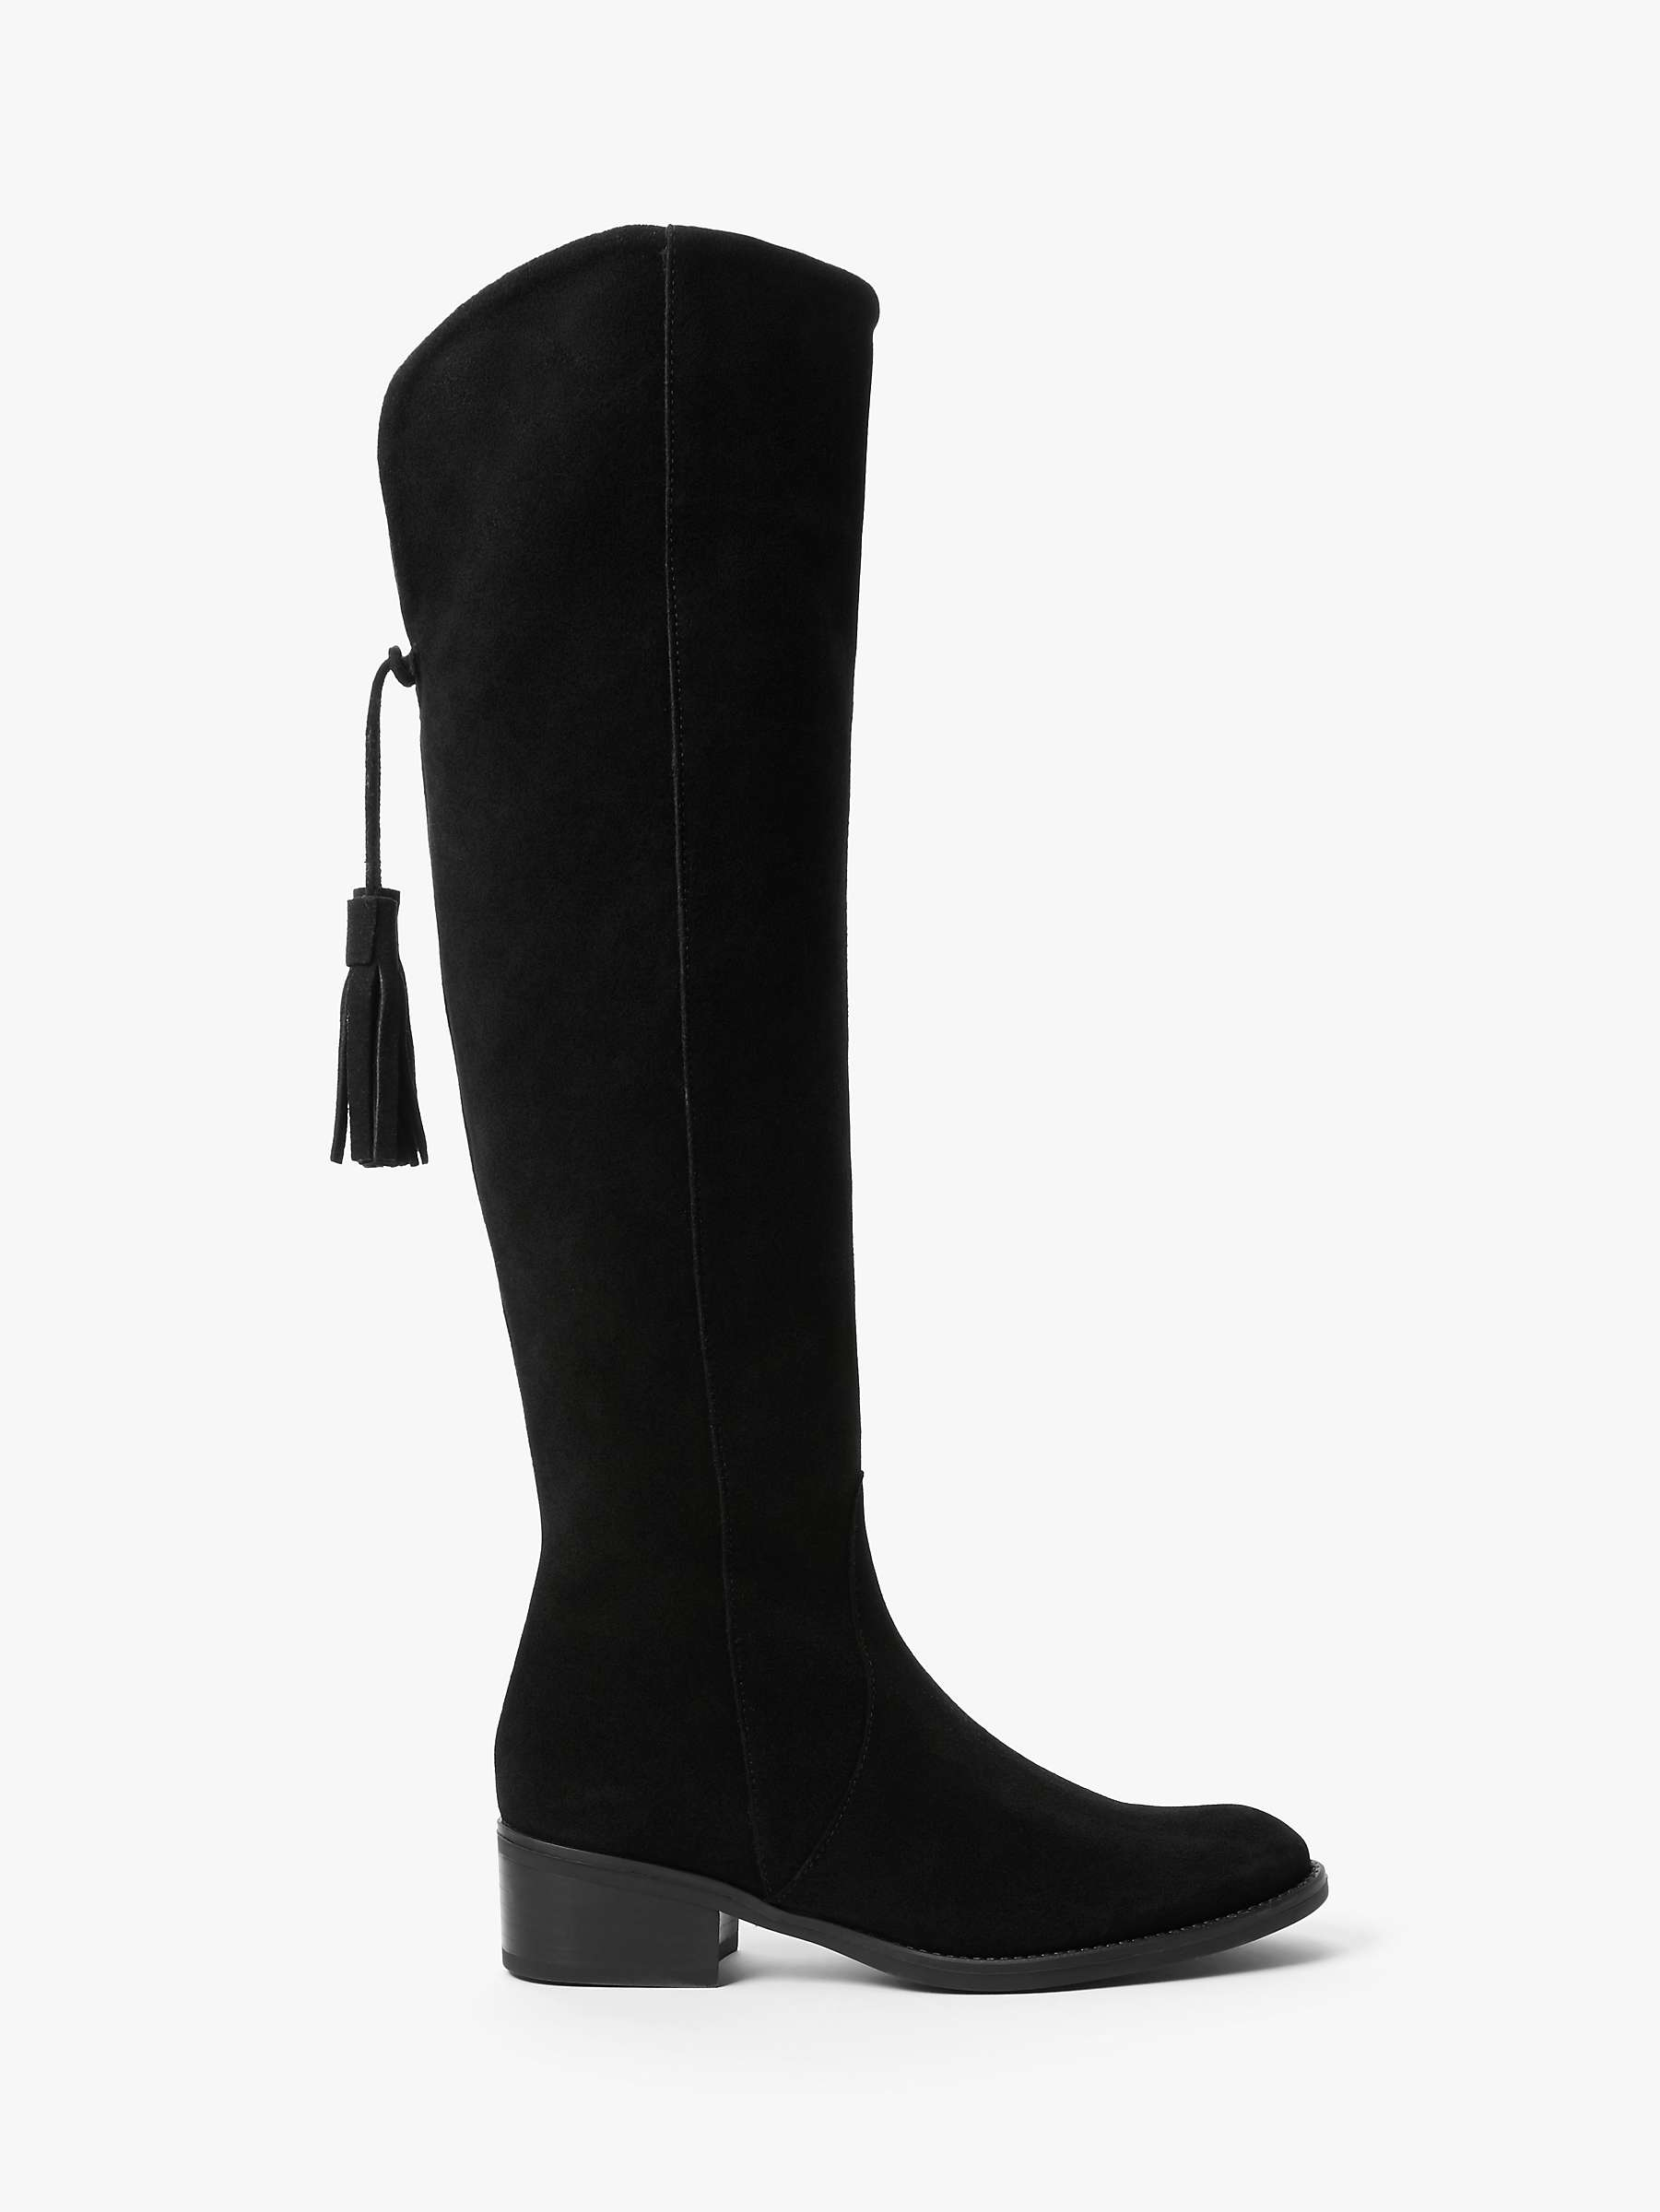 John Lewis & Partners Selina Suede Over The Knee Boots. Black by John Lewis